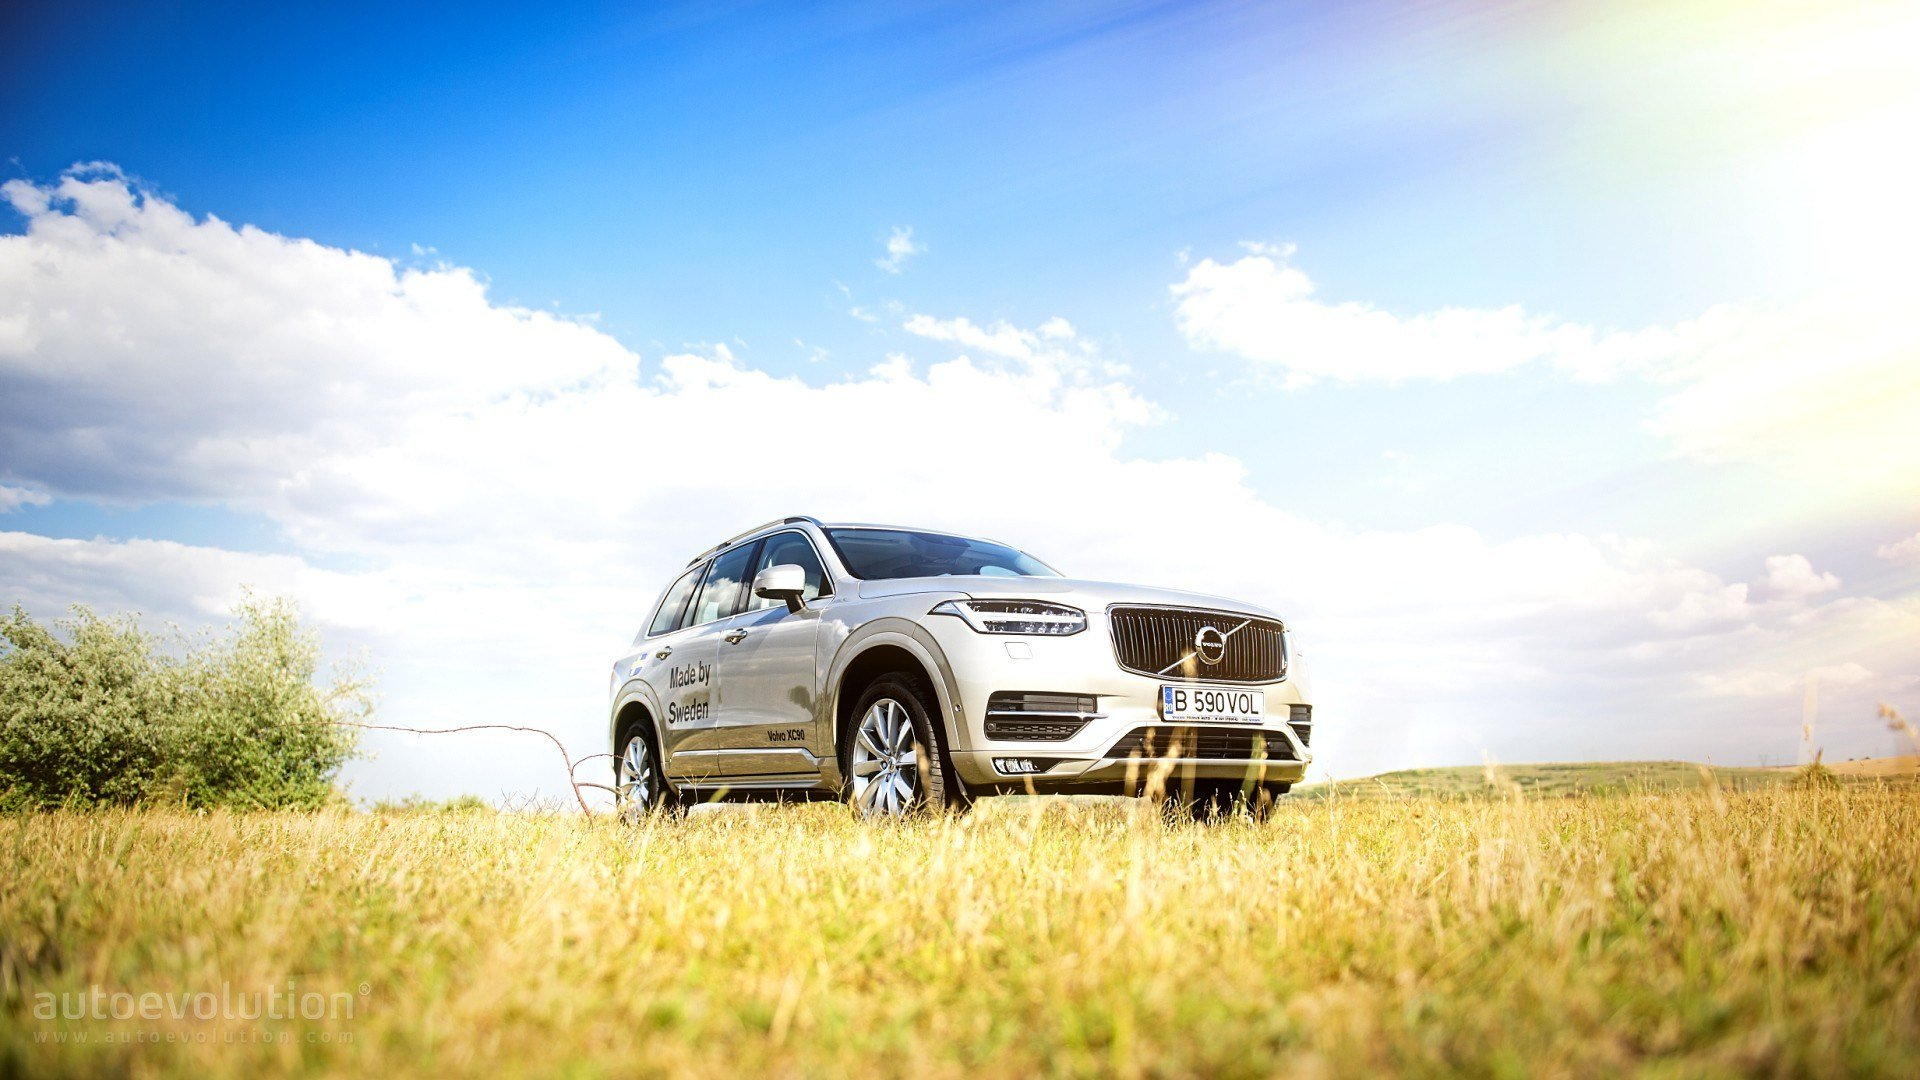 New 2016 Volvo Xc90 Hd Wallpapers Thor 2 Autoevolution On This Month